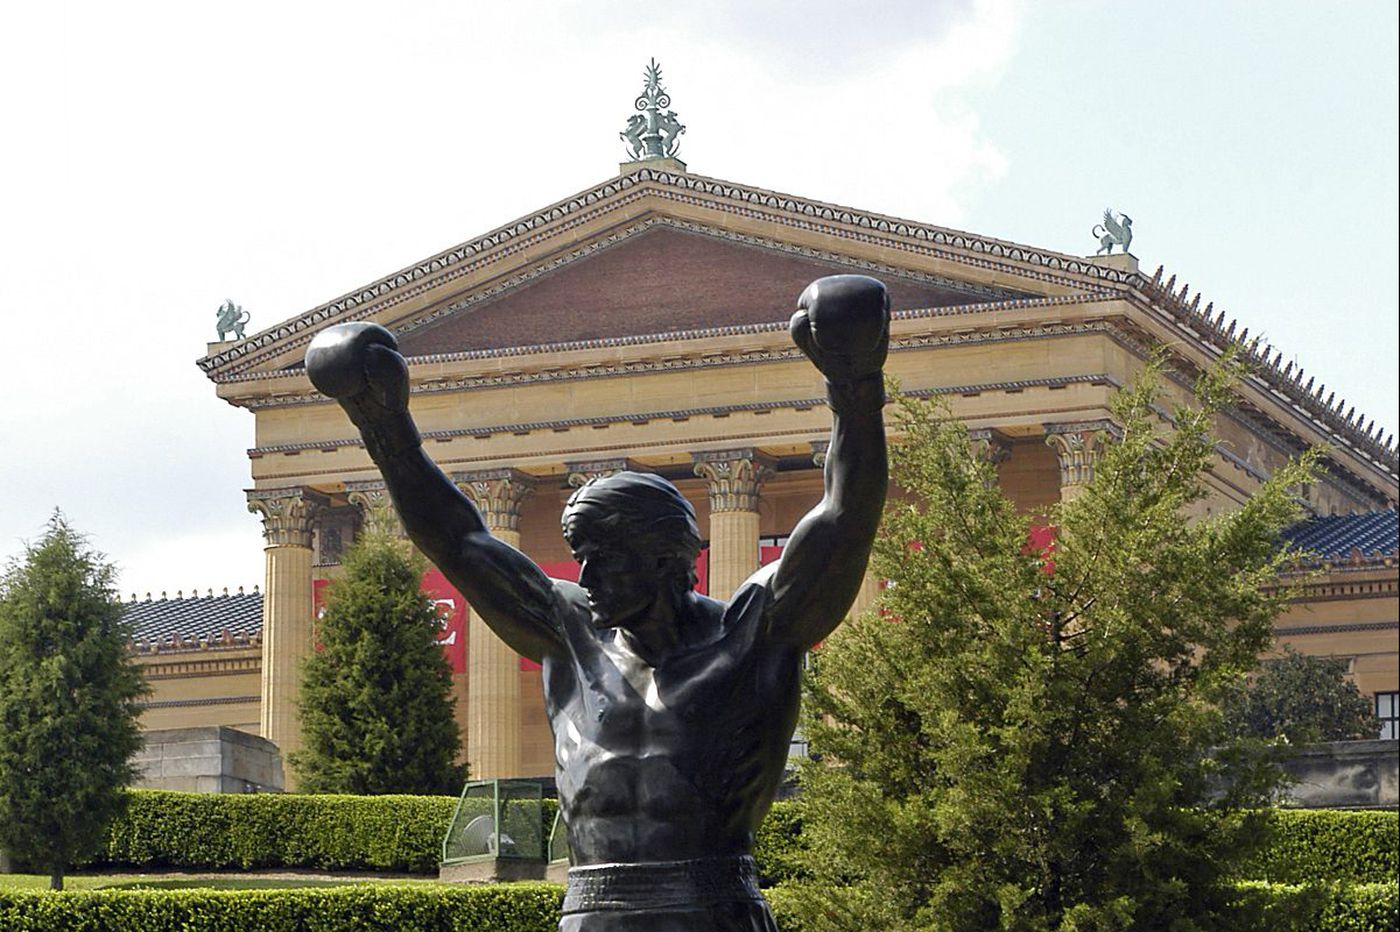 Event celebrates 'The Rise of the Rocky Steps' at the Philadelphia Museum of Art